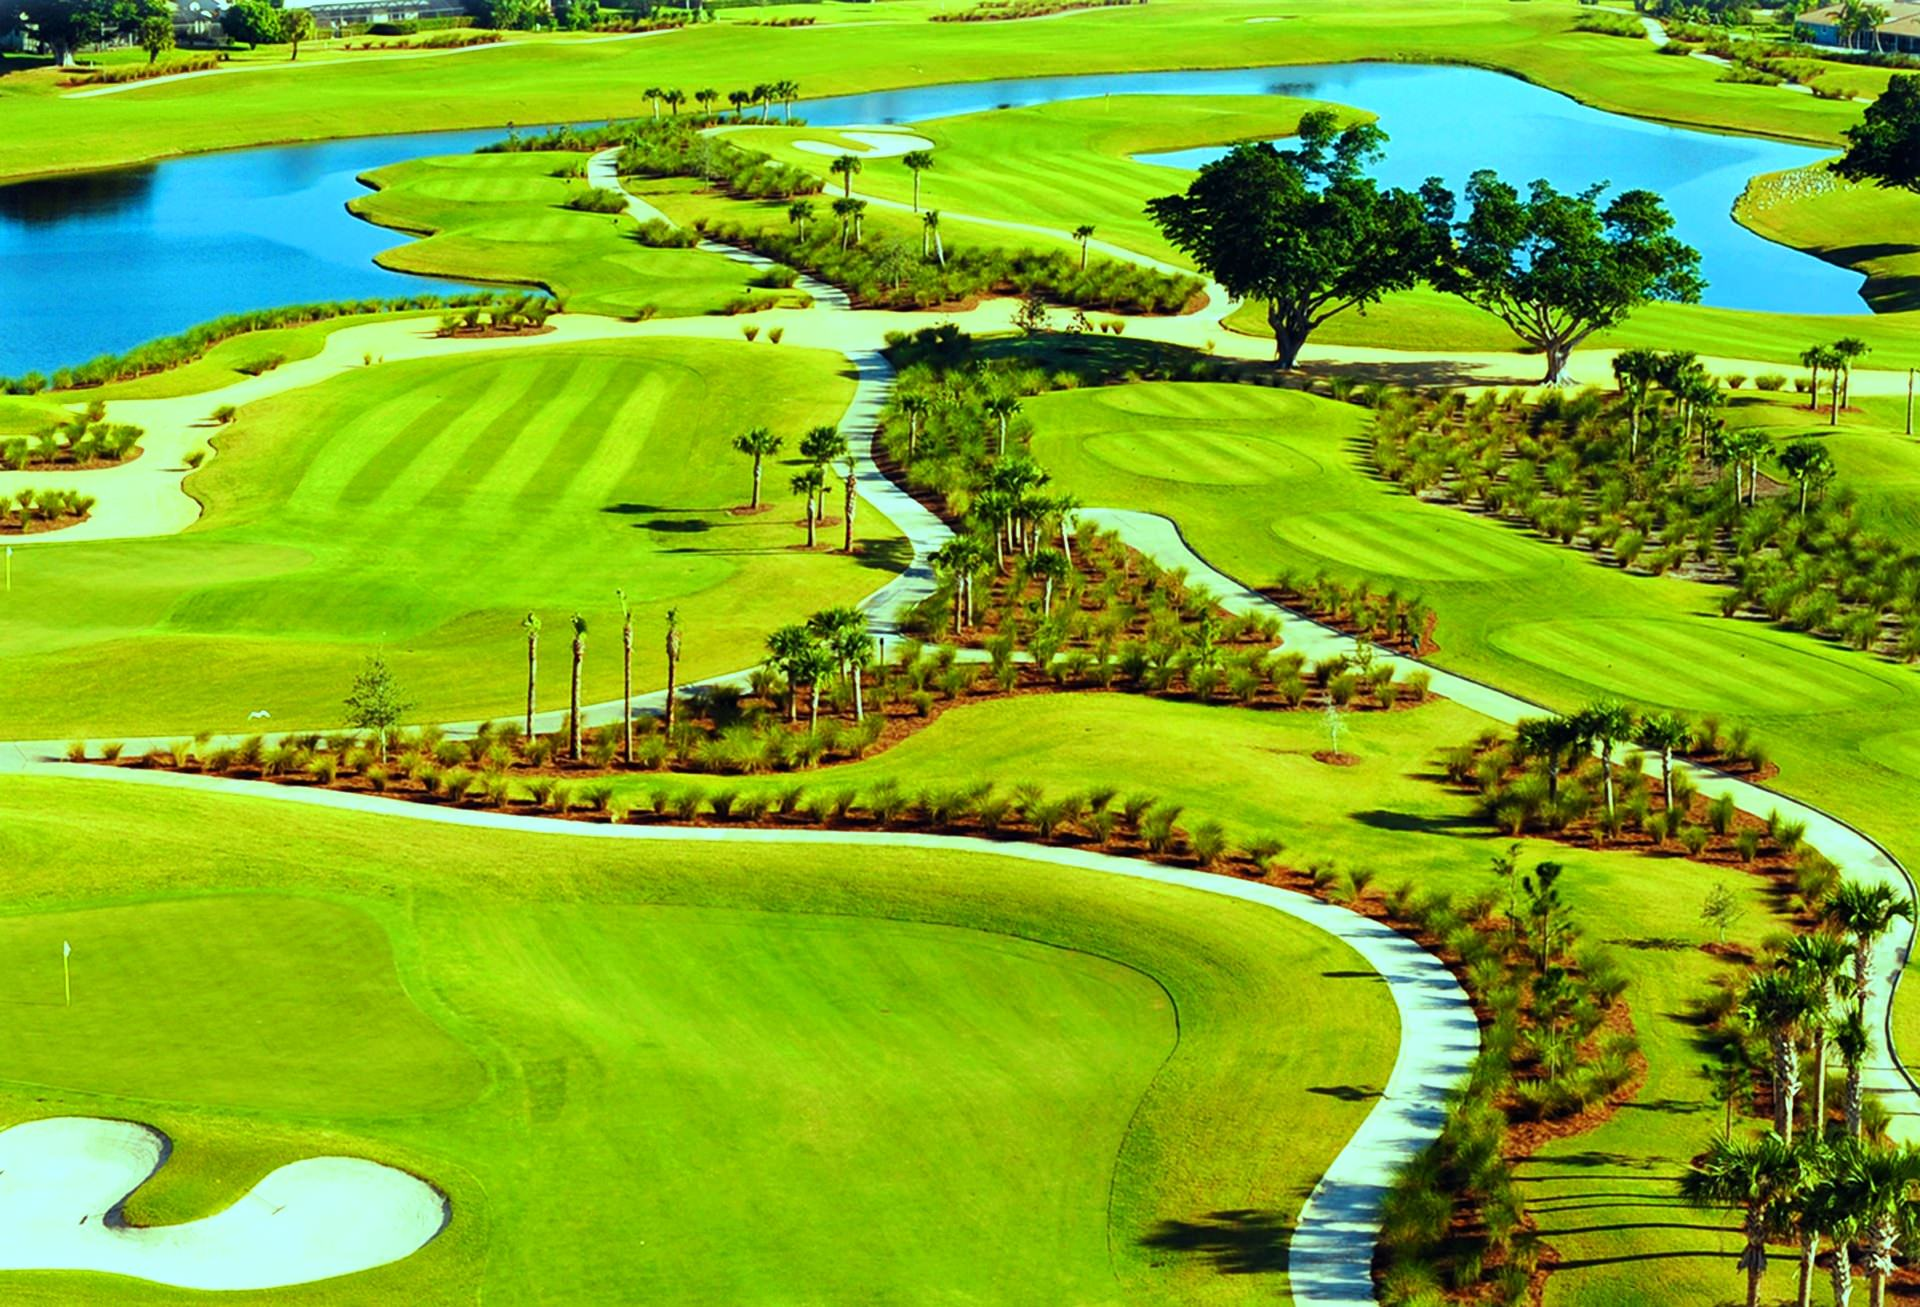 presidentcountryclub_west_palm_beach_fl2 - palm beach